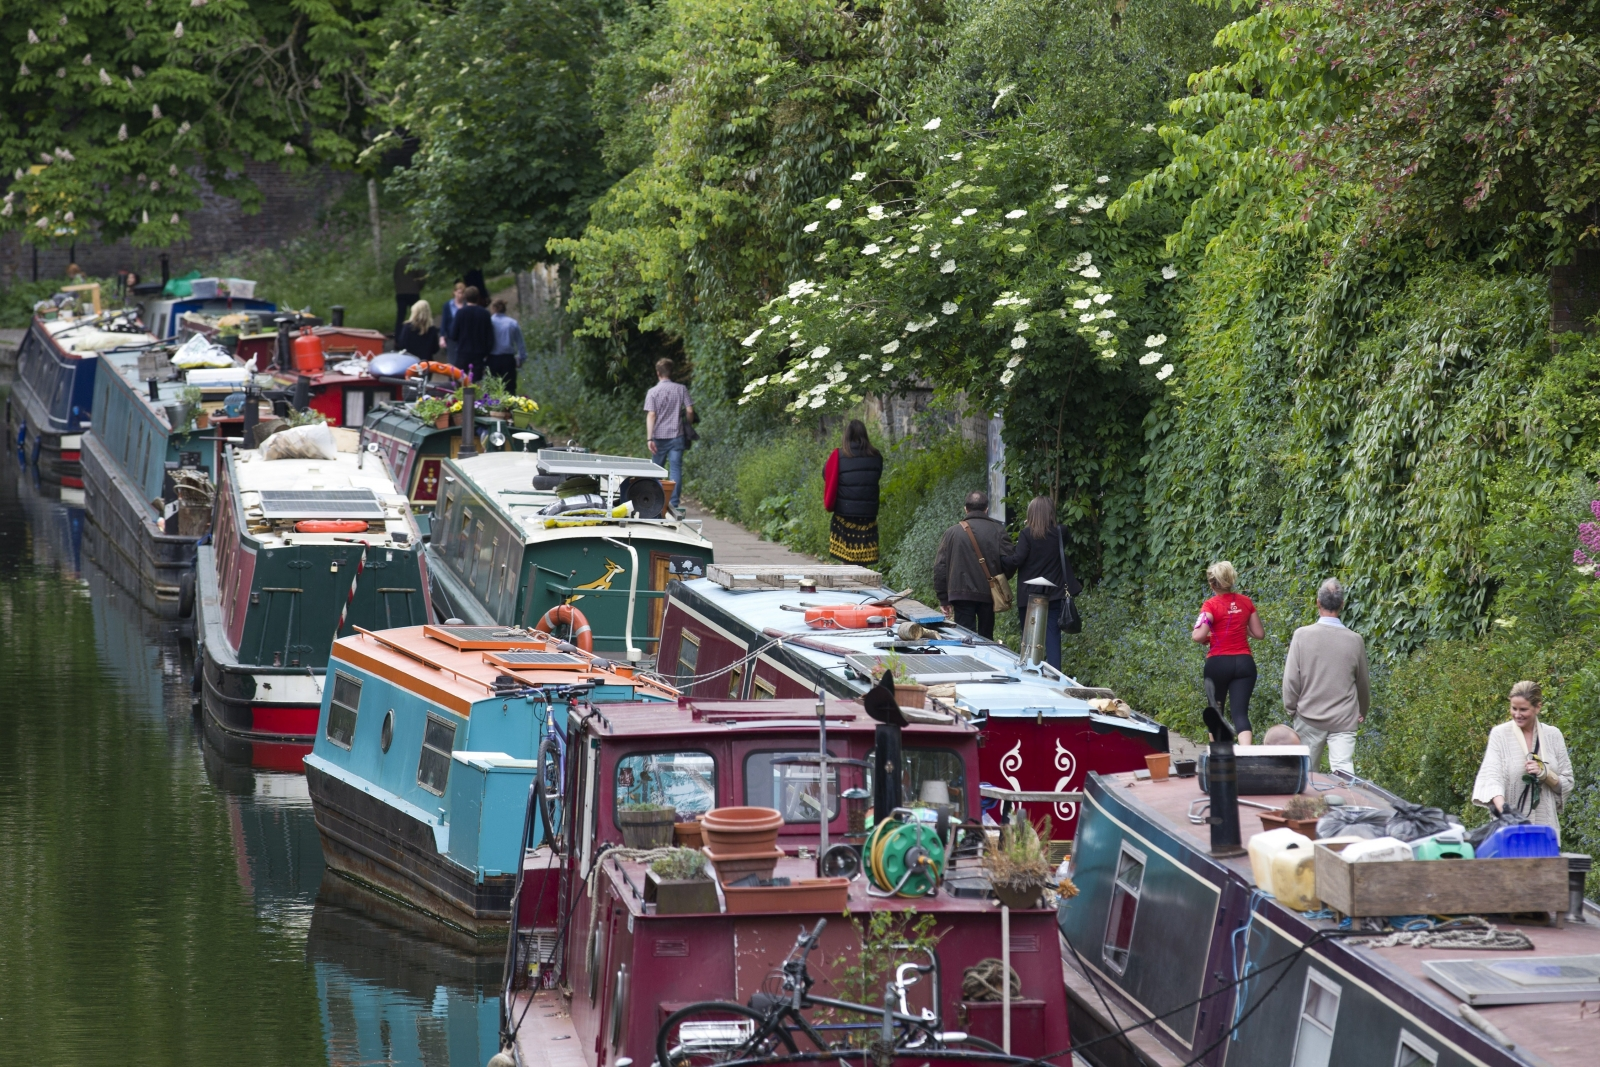 Three Bedroom House For Rent London Rents Crisis A Home On The City S Canal Boats And